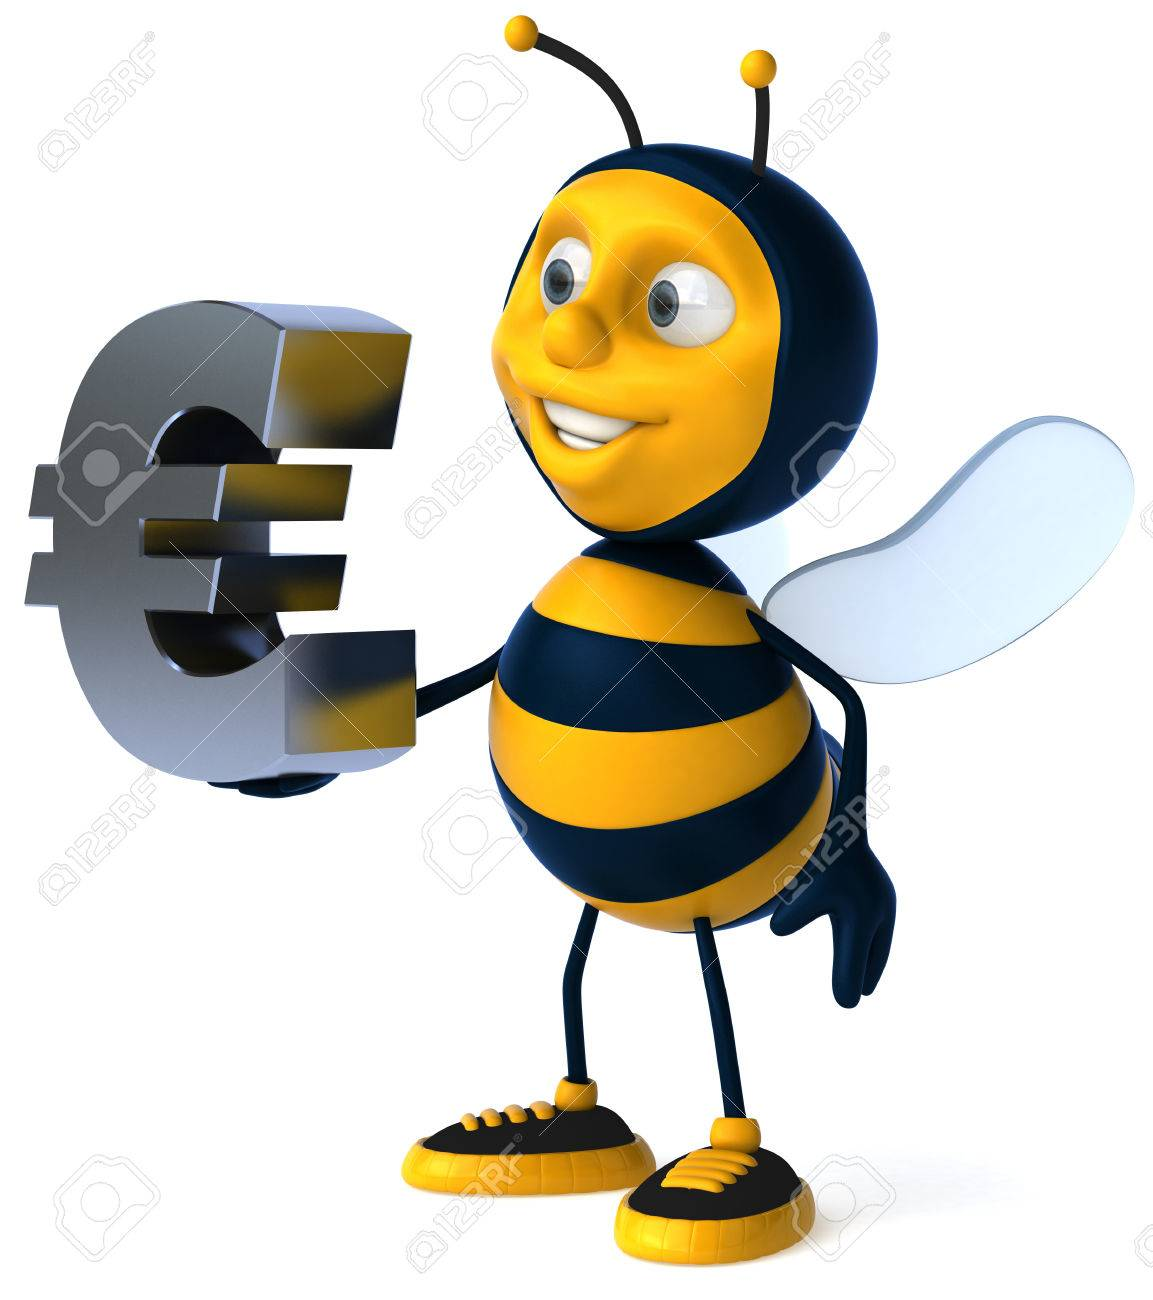 Cartoon Bee With Euro Sign Stock Photo Picture And Royalty Free